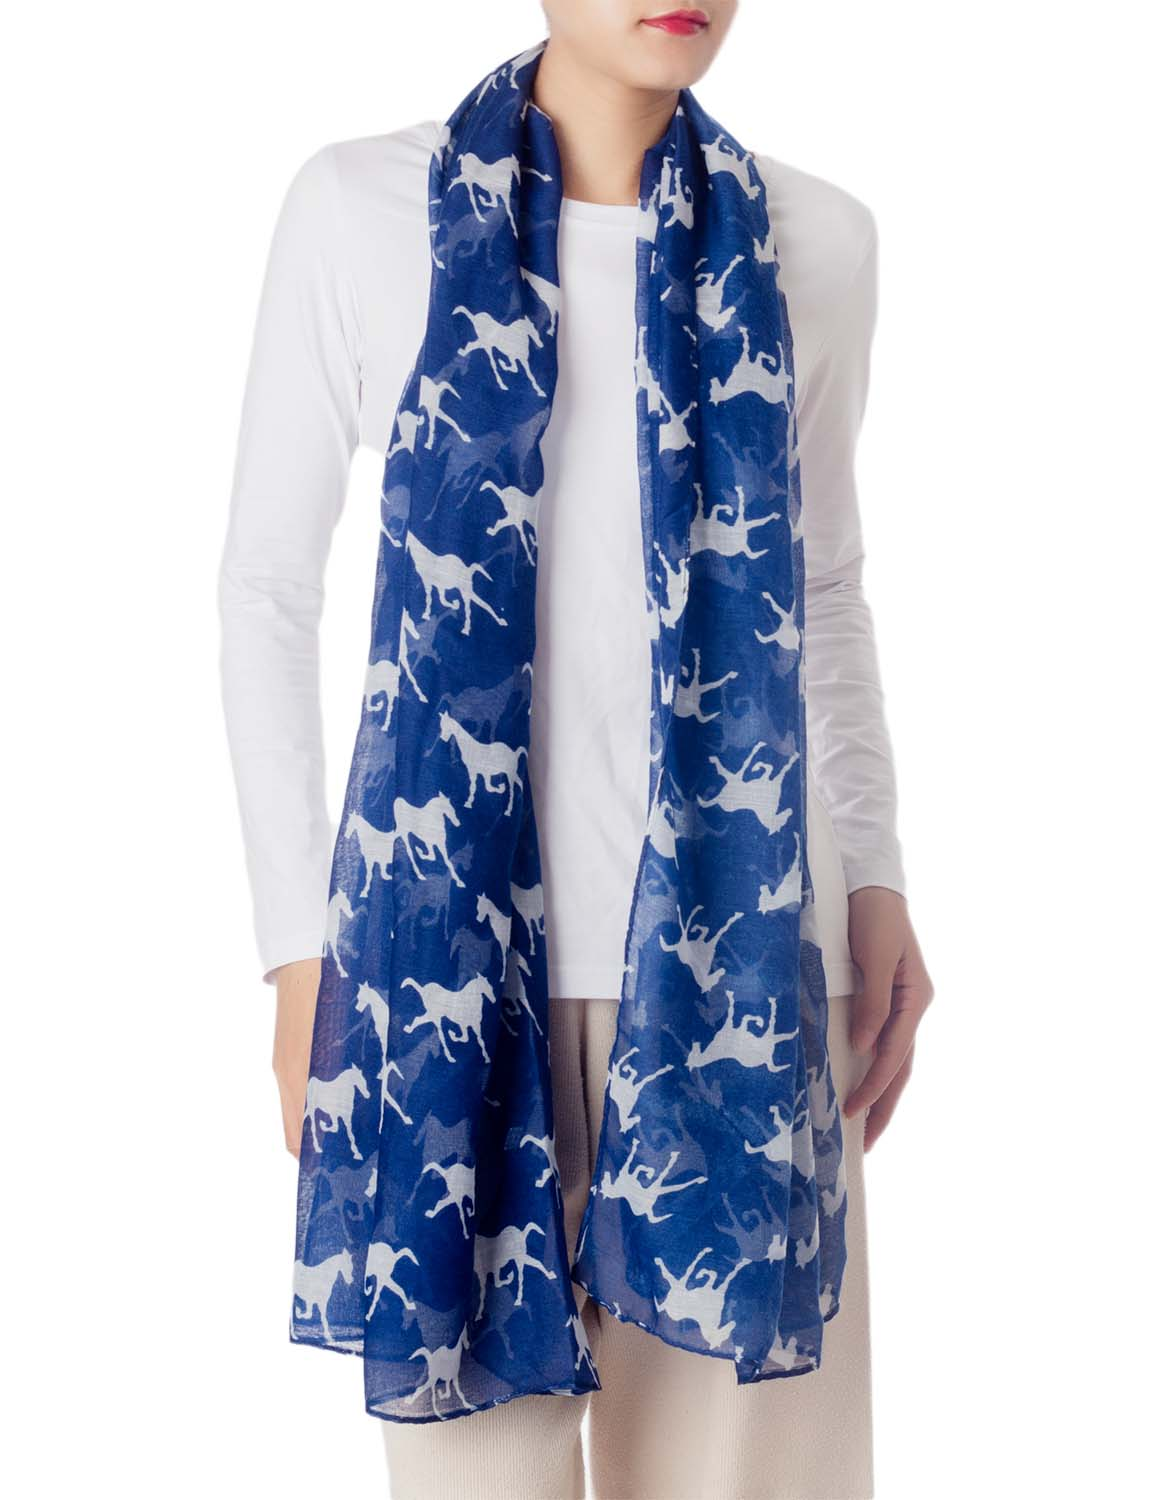 Women's Black Horse Pony Printing Gorgeous Lightweight Long Fashion Scarf, Size: One Size, Navy